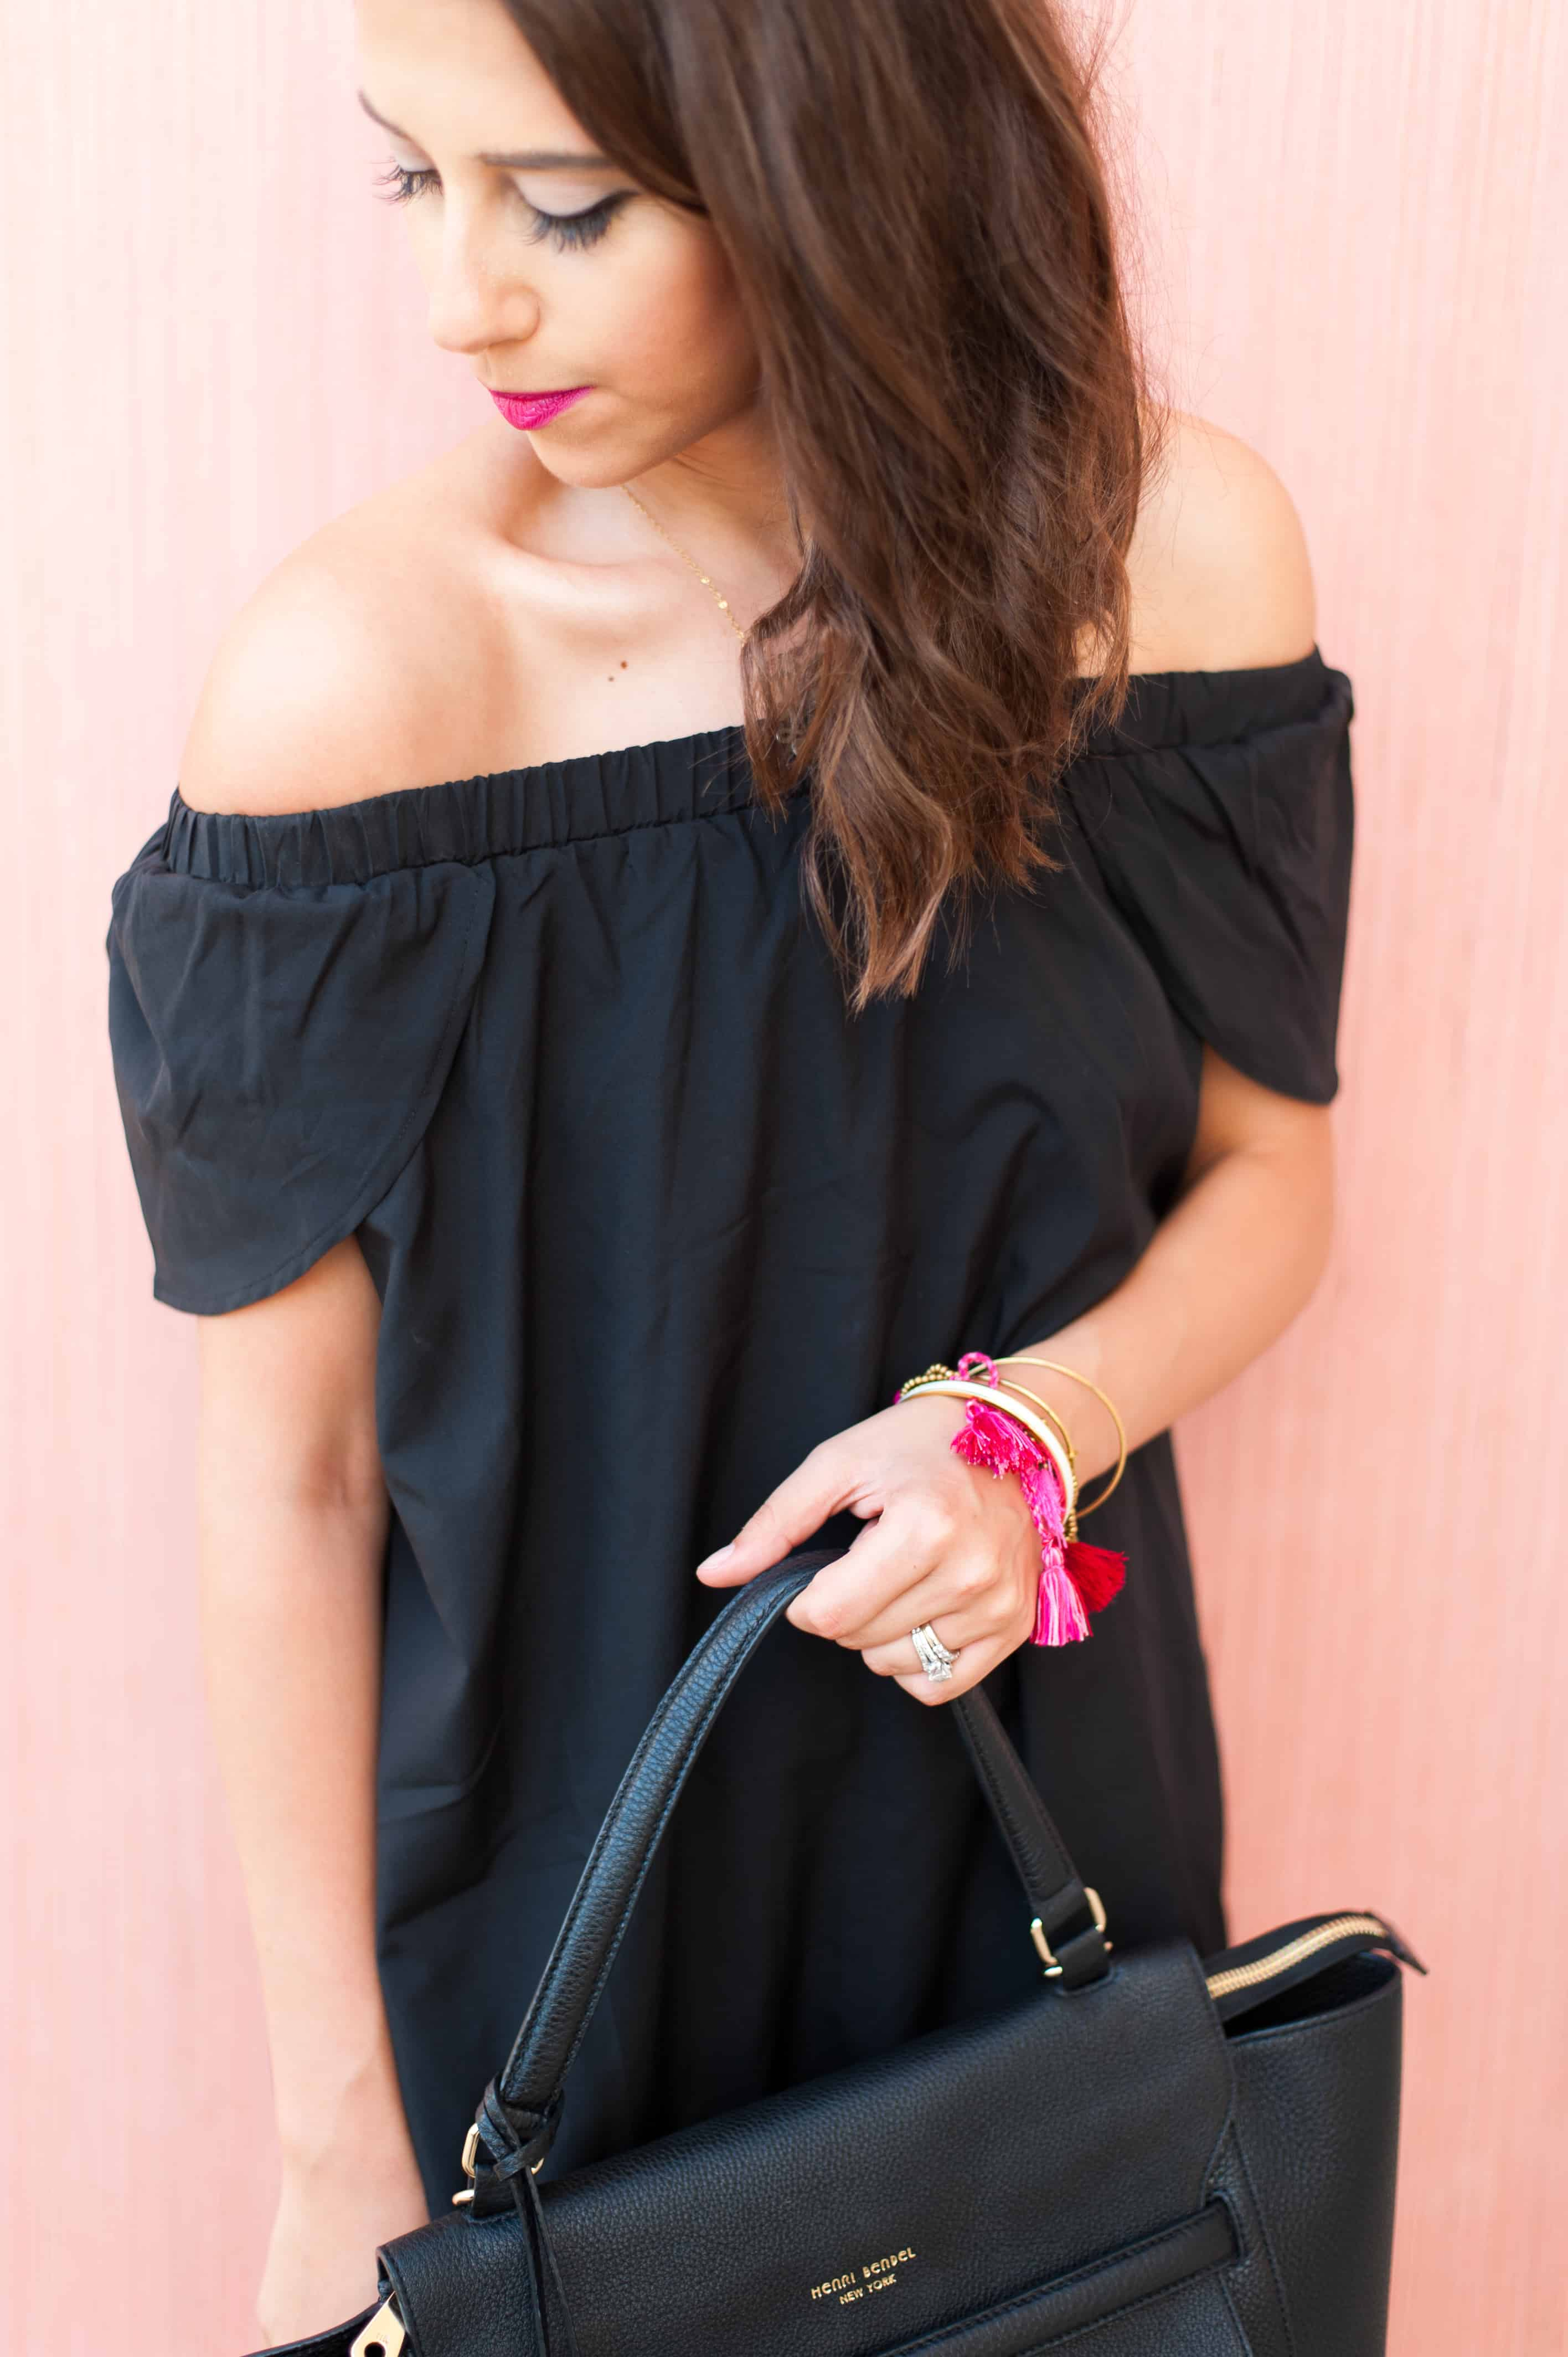 Dress Up Buttercup // A Houston-based fashion and inspiration blog developed to daily inspire your own personal style by Dede Raad | Black Dress In the Summer